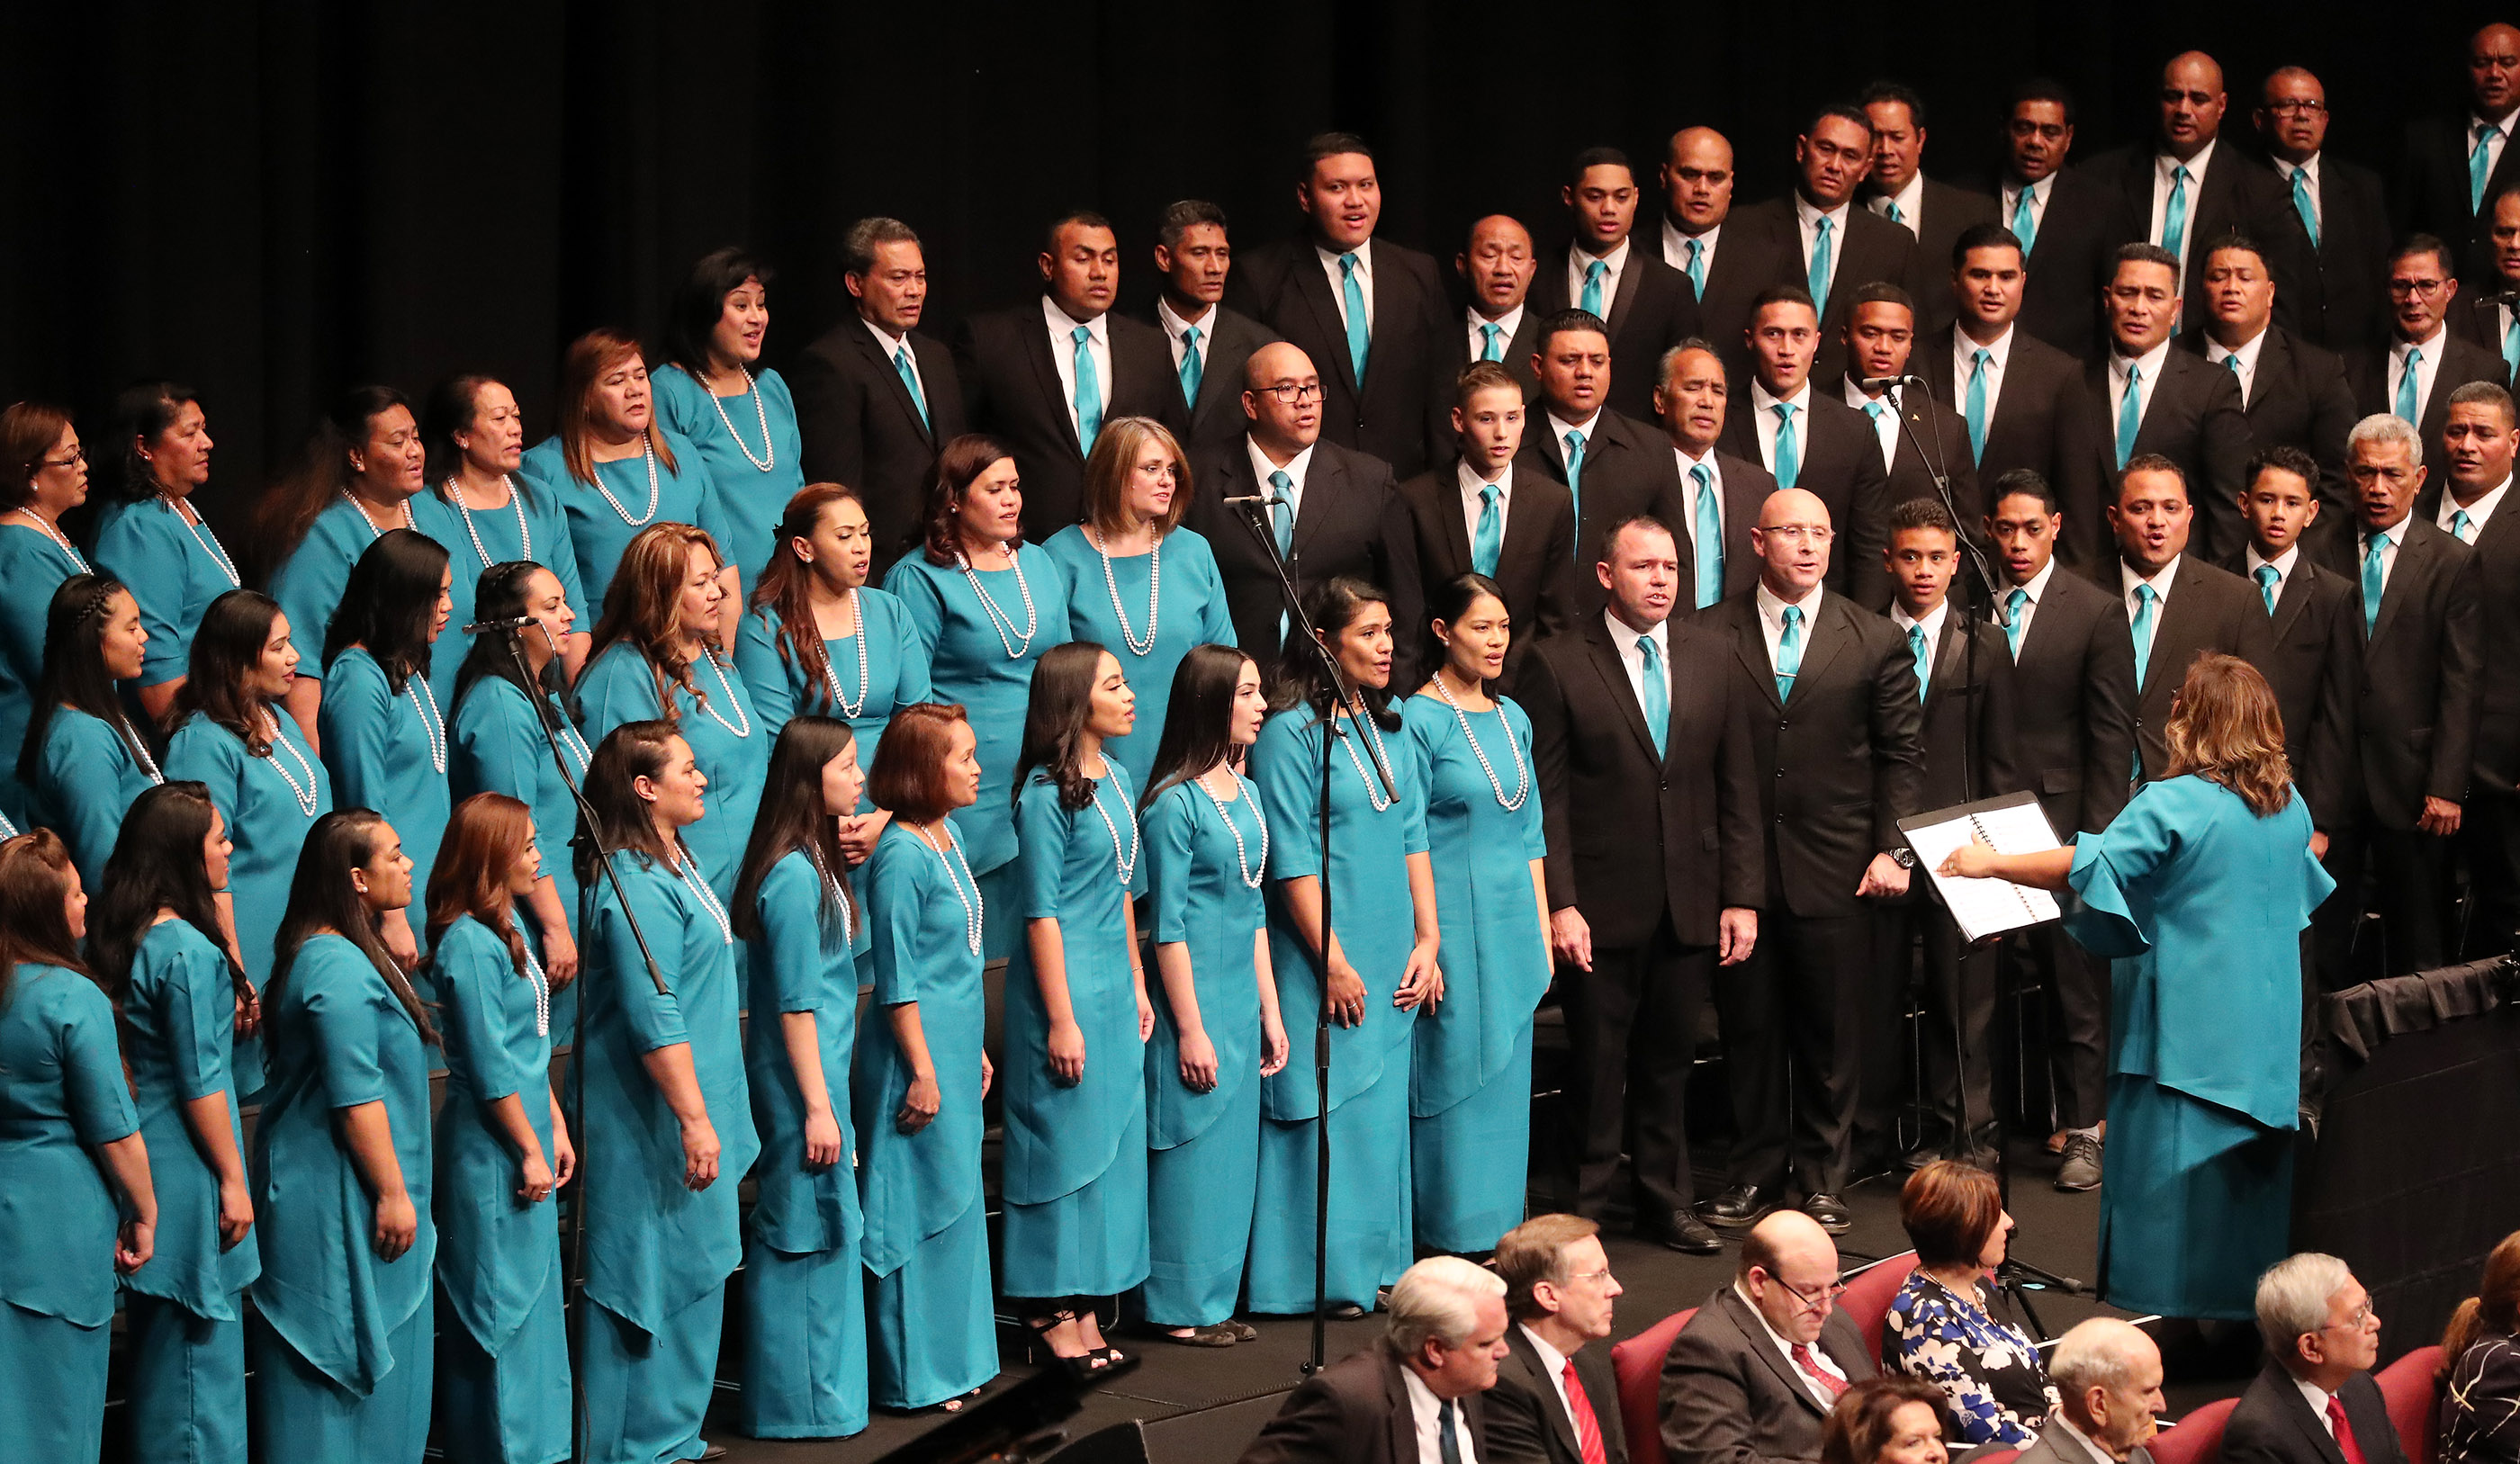 A choir sings at the International Conference Center on May 19, 2019, in Sydney, Australia.